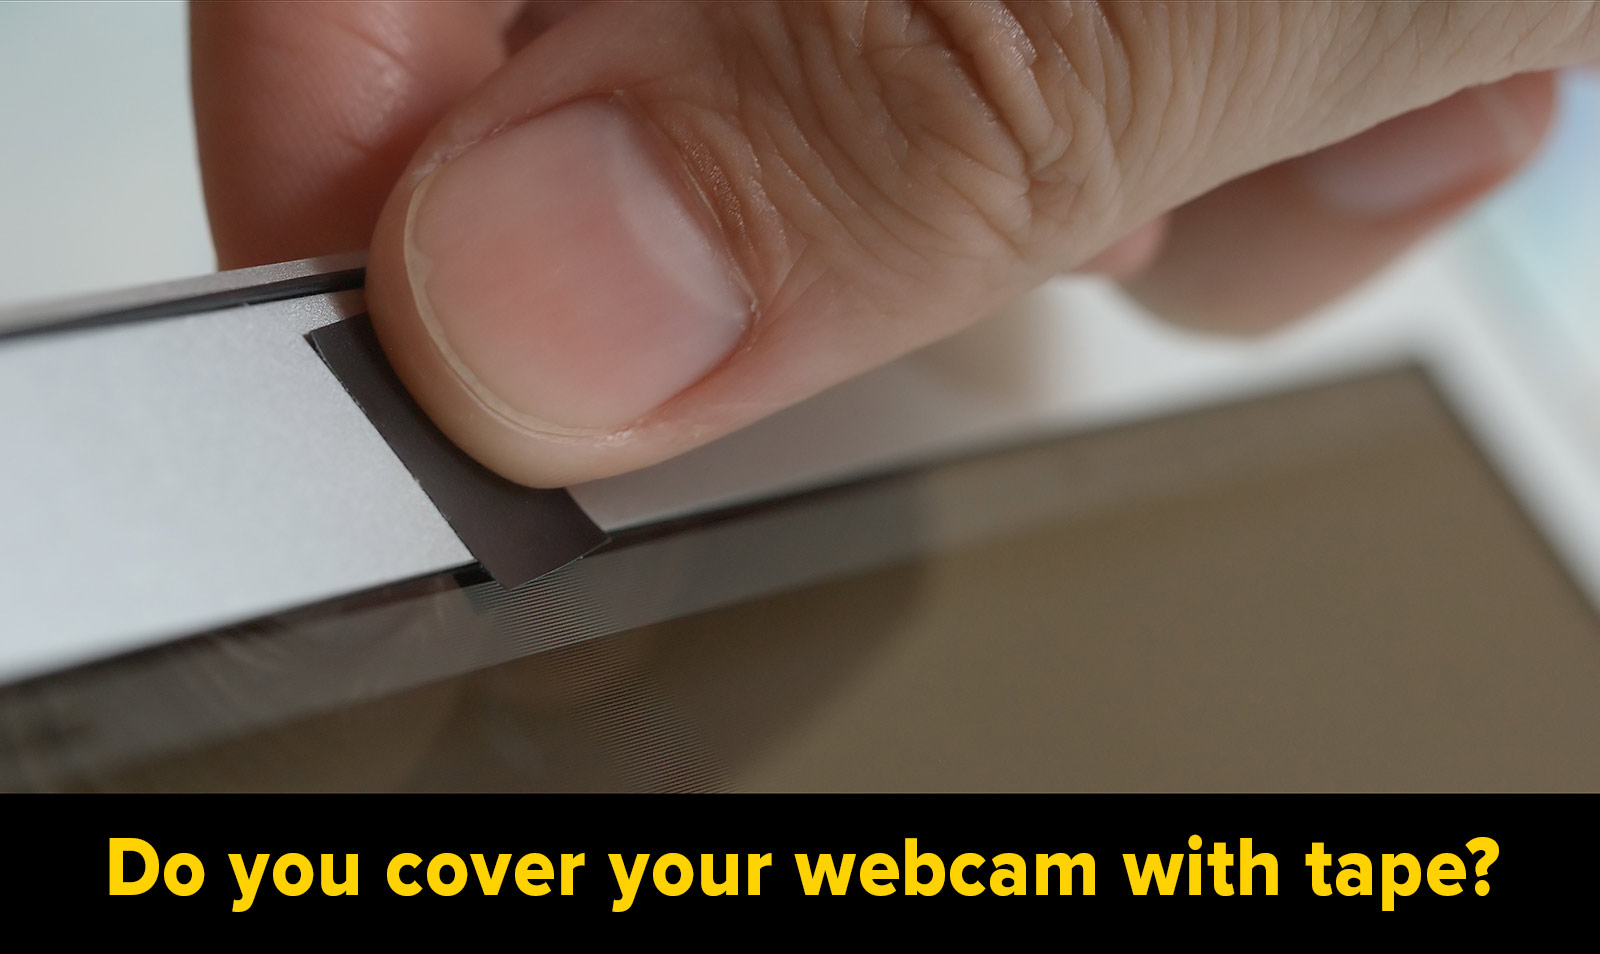 Do you cover your webcam with tape?